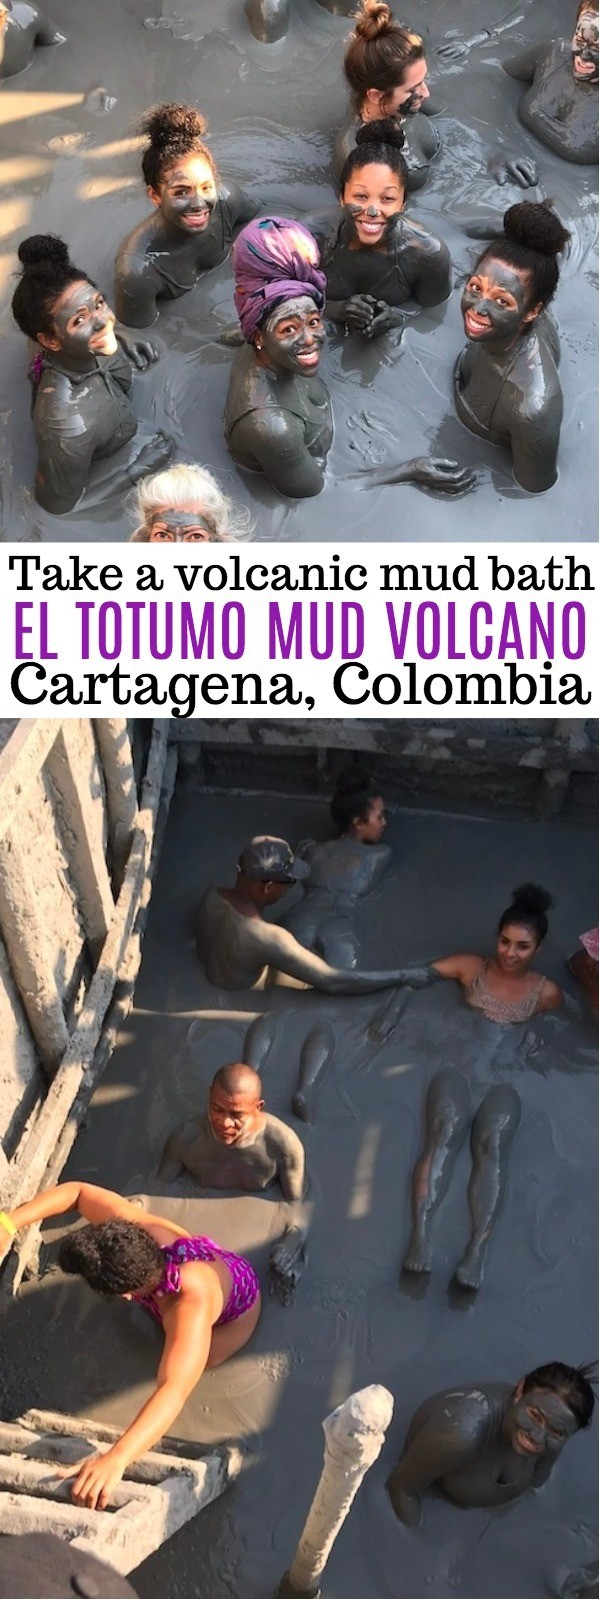 Take A Volcanic Mud Bath In El Totumo Mud Volcano - One Of The Best Day Trips From Cartagena